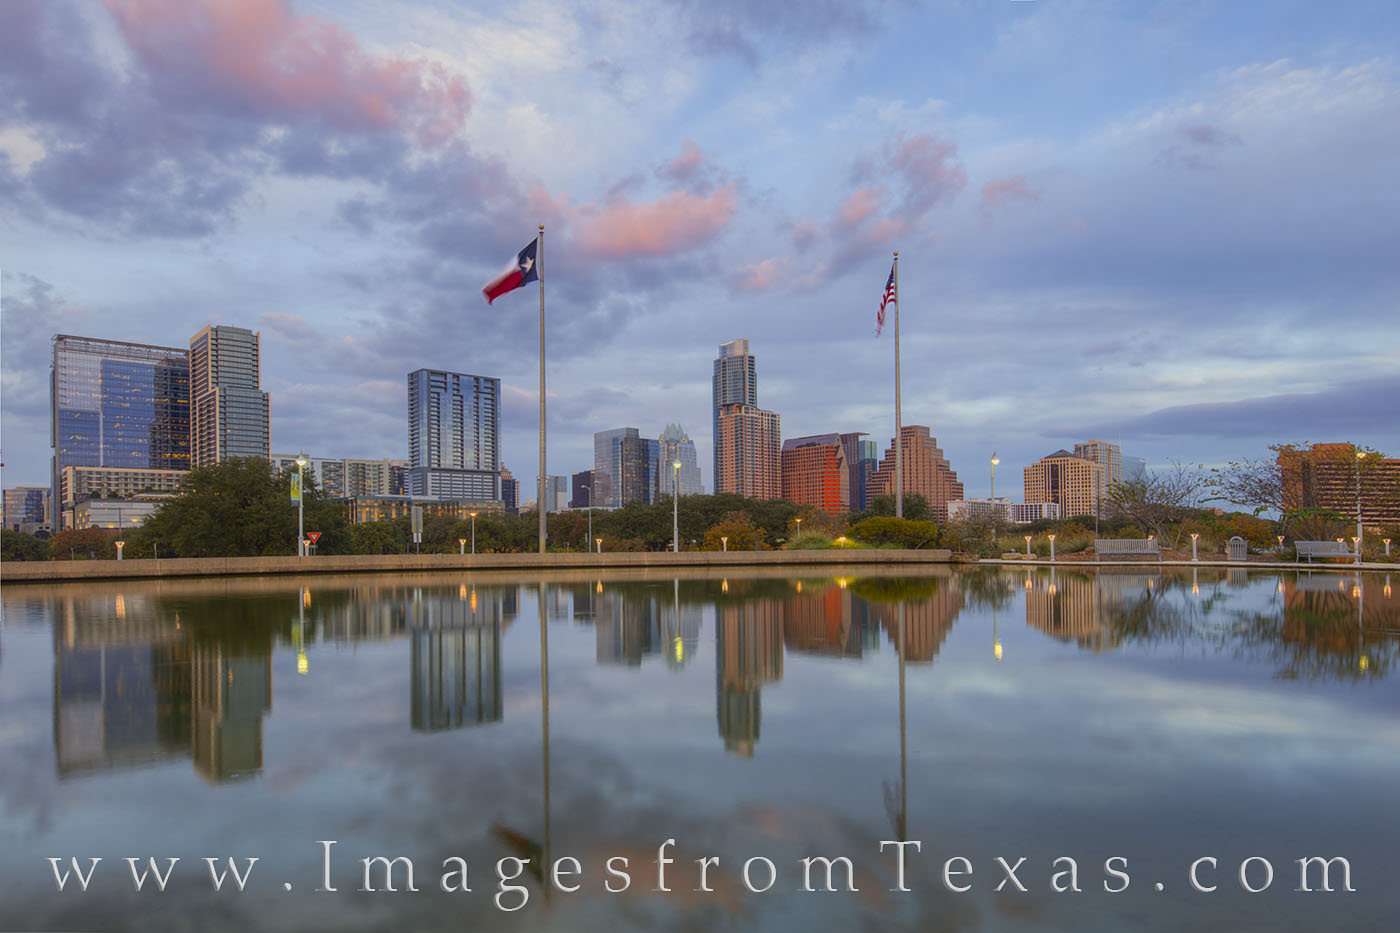 From the pool just to the west of the Long Center near downtown Austin, Texas, this view shows the reflection of the skyline...